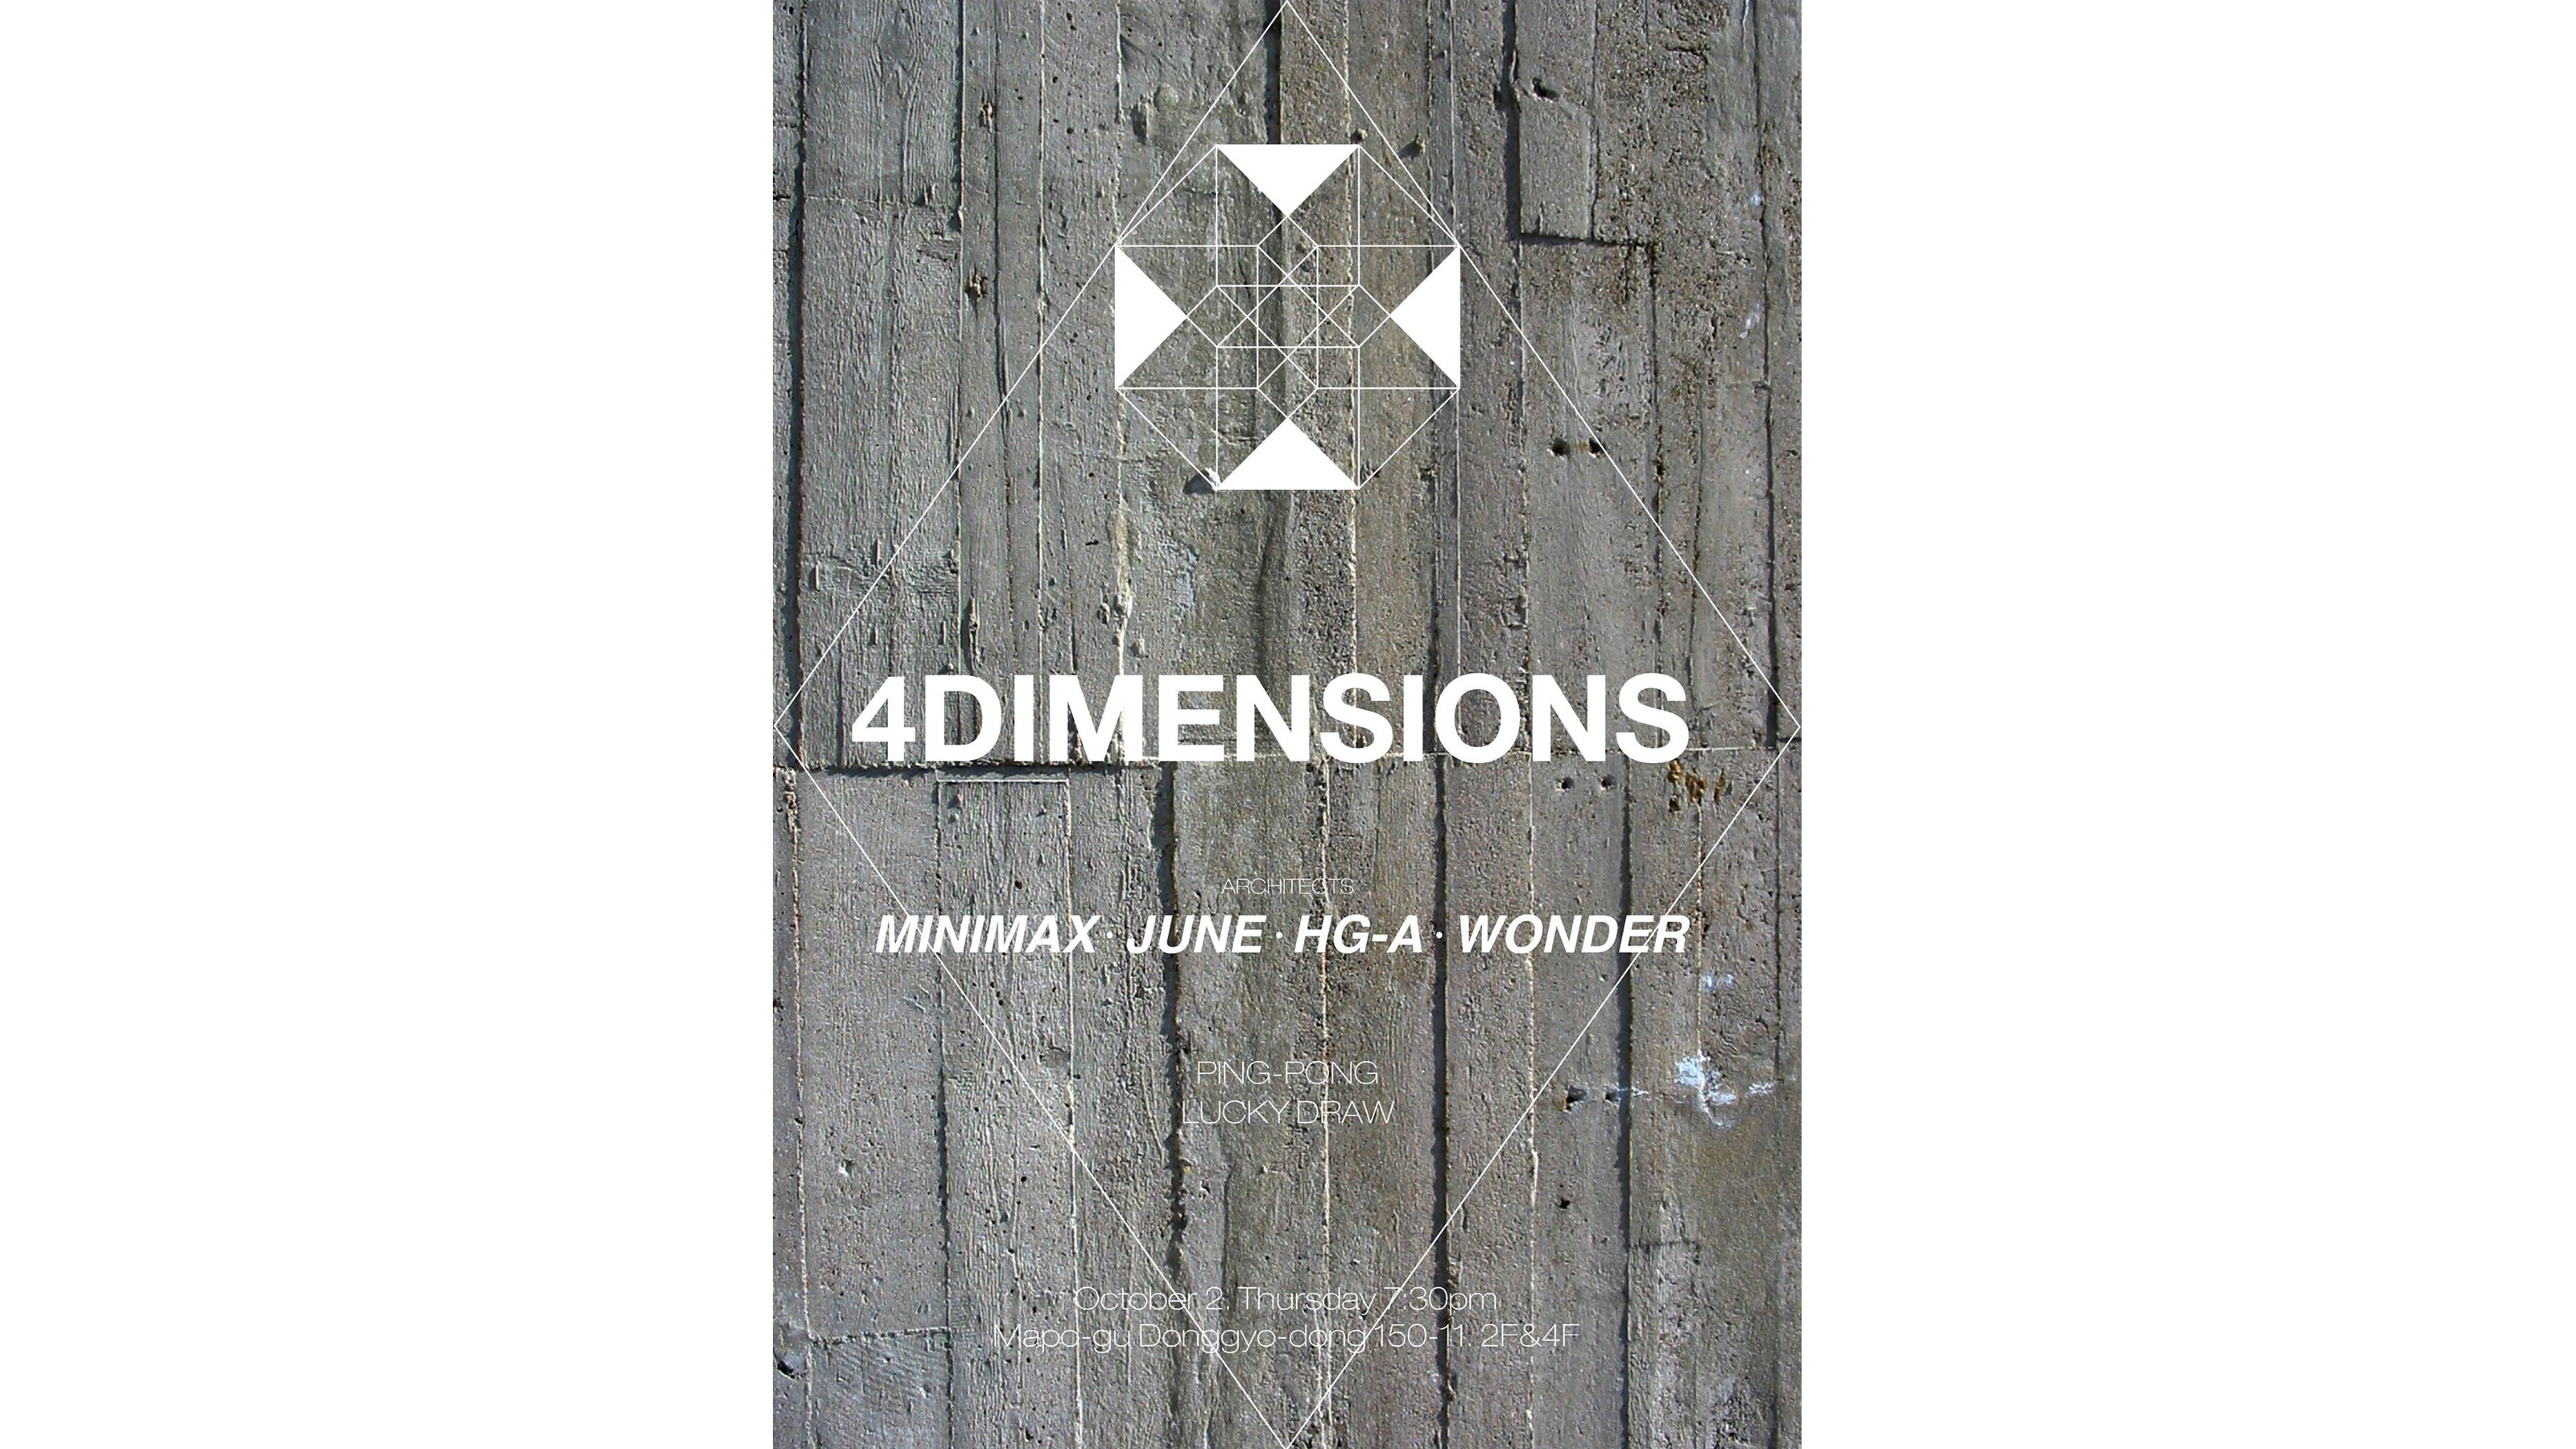 140925_4dimensions party poster